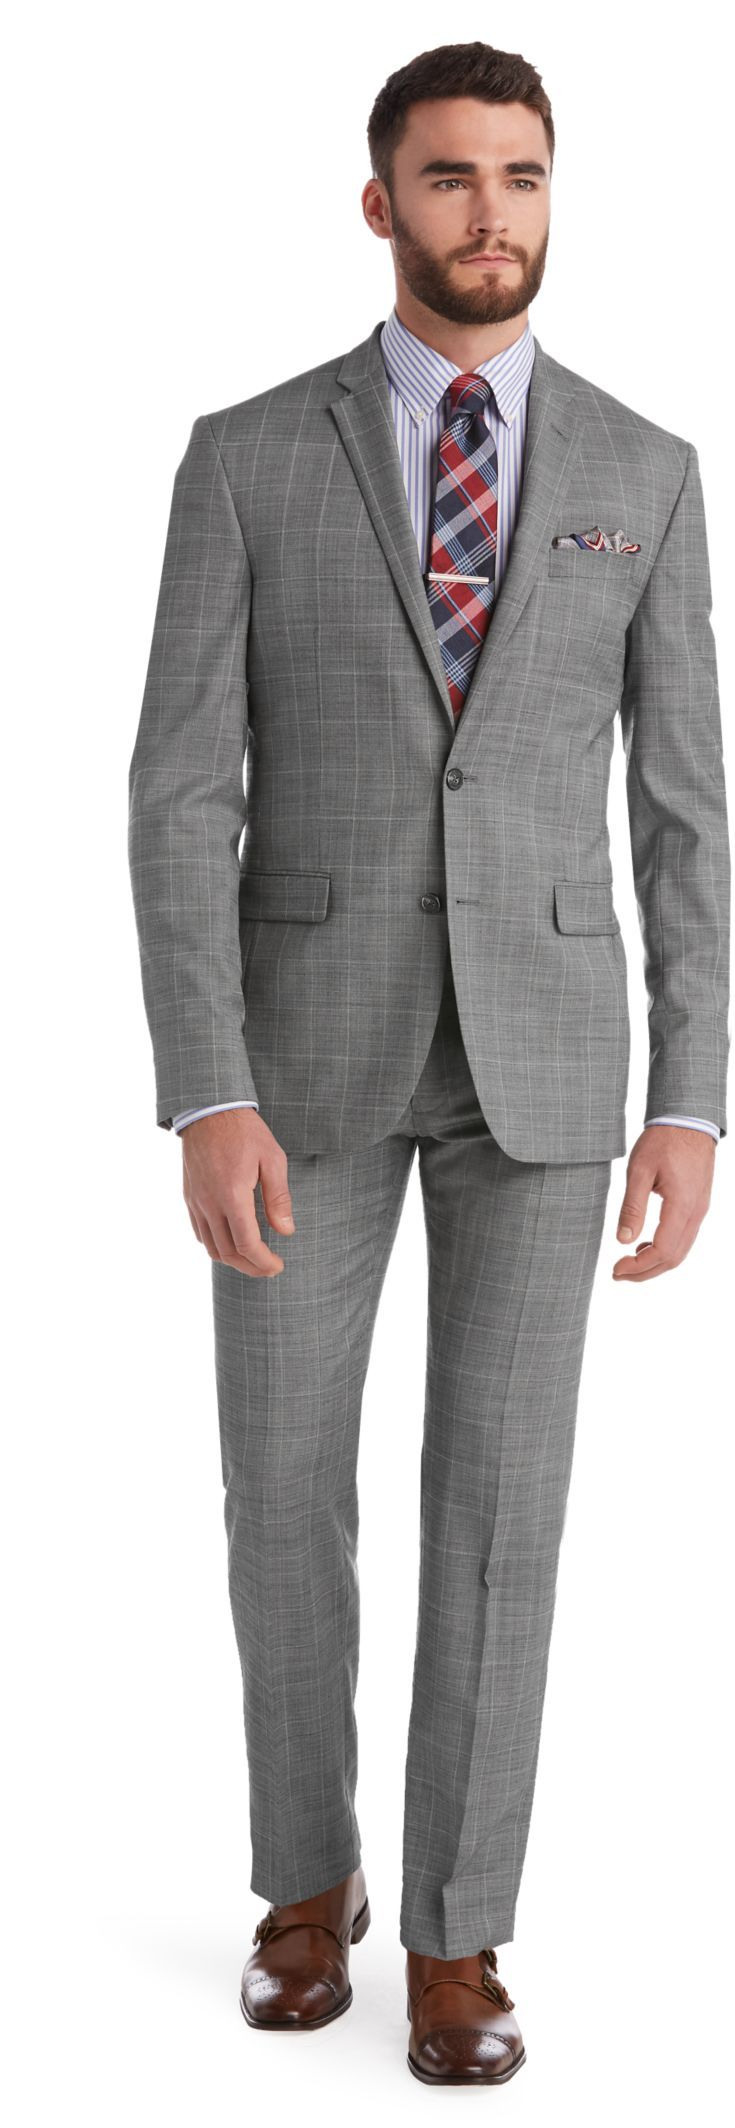 Check this out! 1905 Collection Slim Fit Plaid Sharkskin